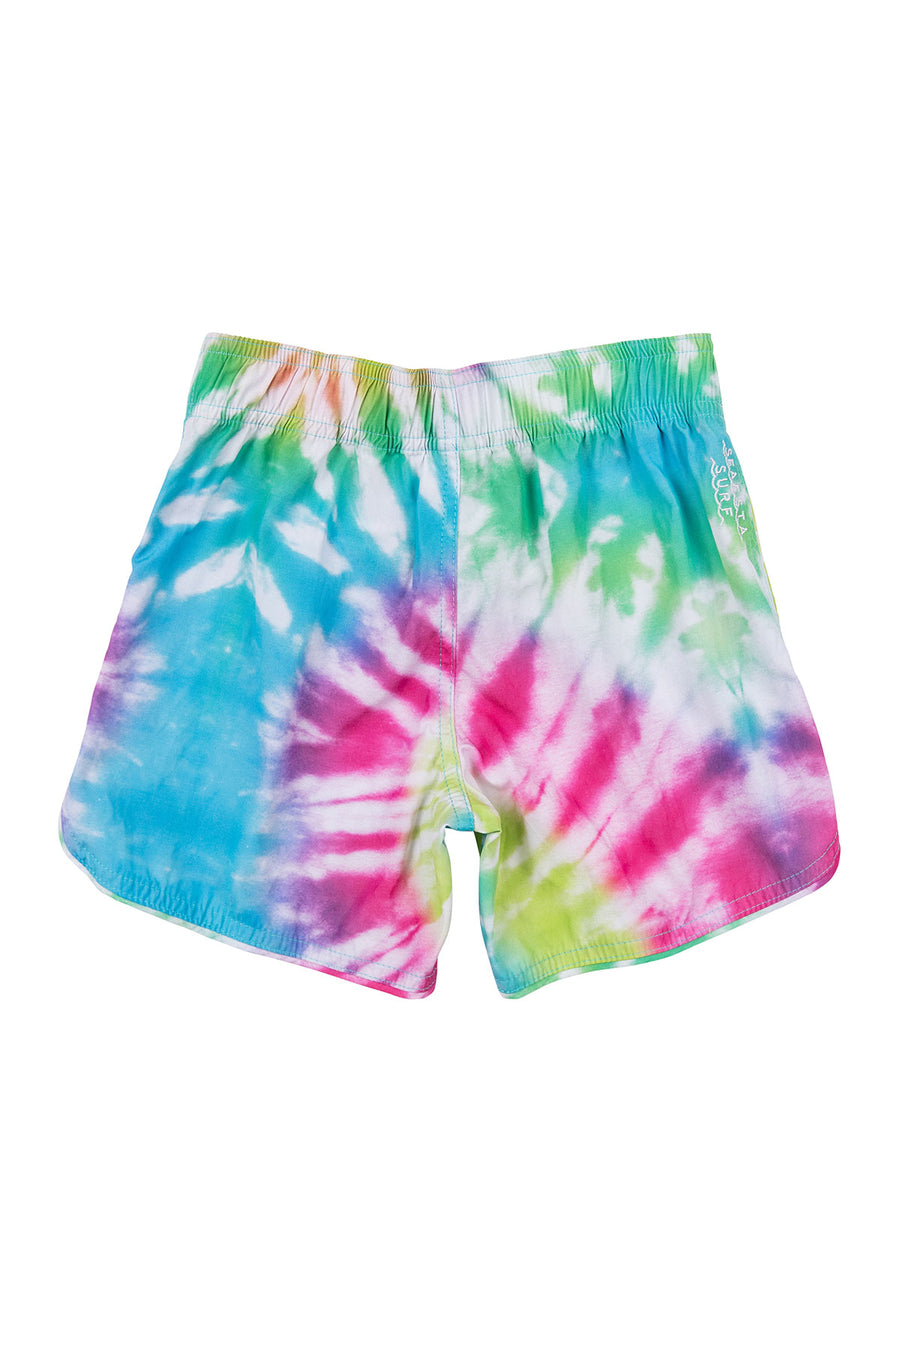 Sea Ripple / Neon Tie Dye / Boardshorts